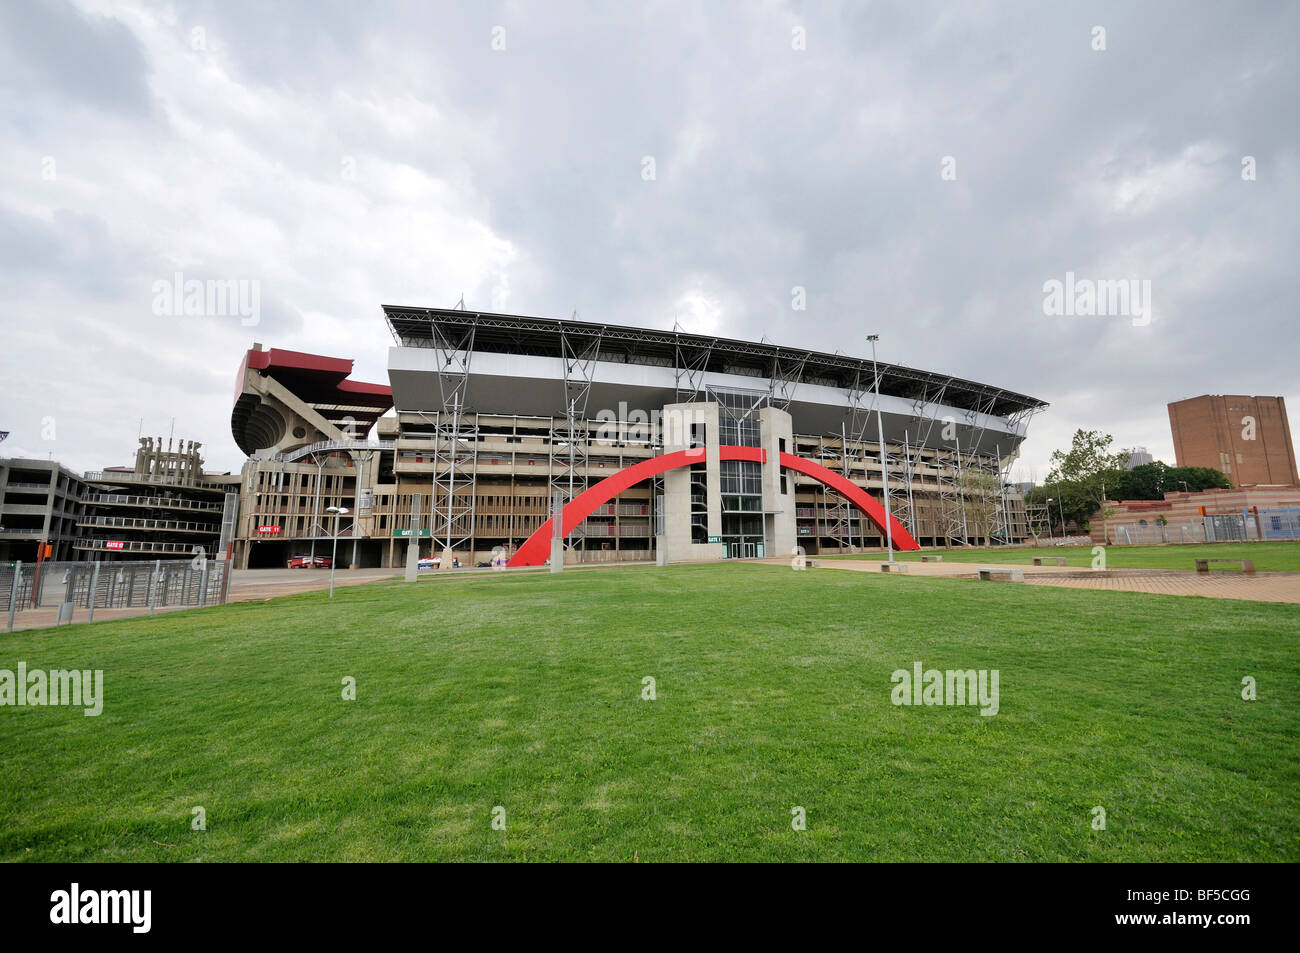 2010 FIFA World Cup, Ellis Park or Coca-Cola Park Stadium in Johannesburg, South Africa, Africa - Stock Image